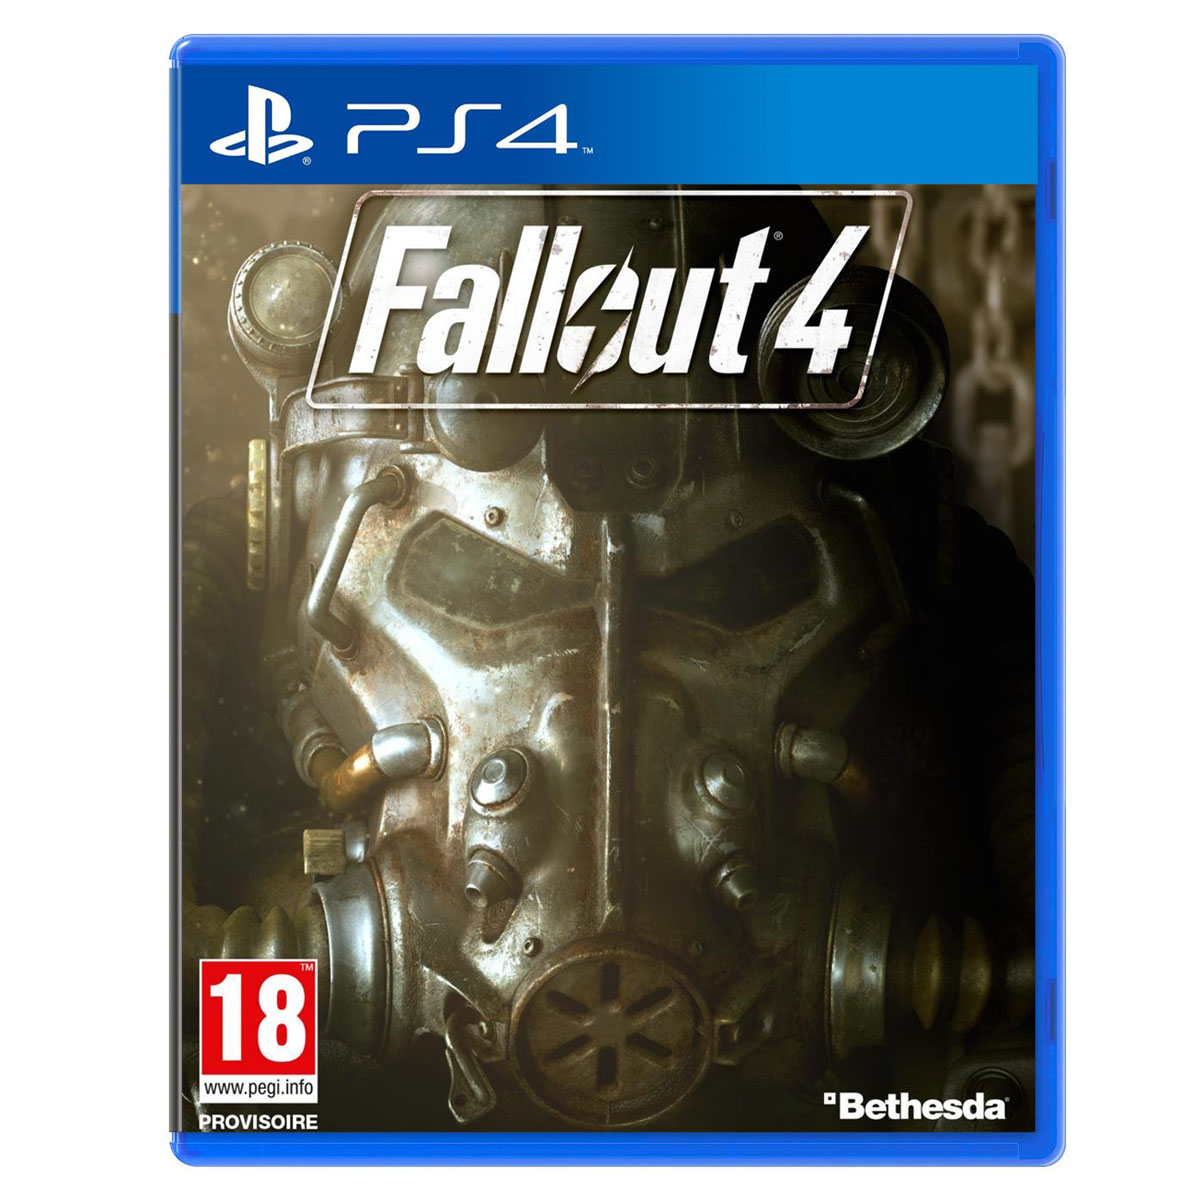 Jeux PS4 Fallout 4 (PS4) Fallout 4 (PS4)